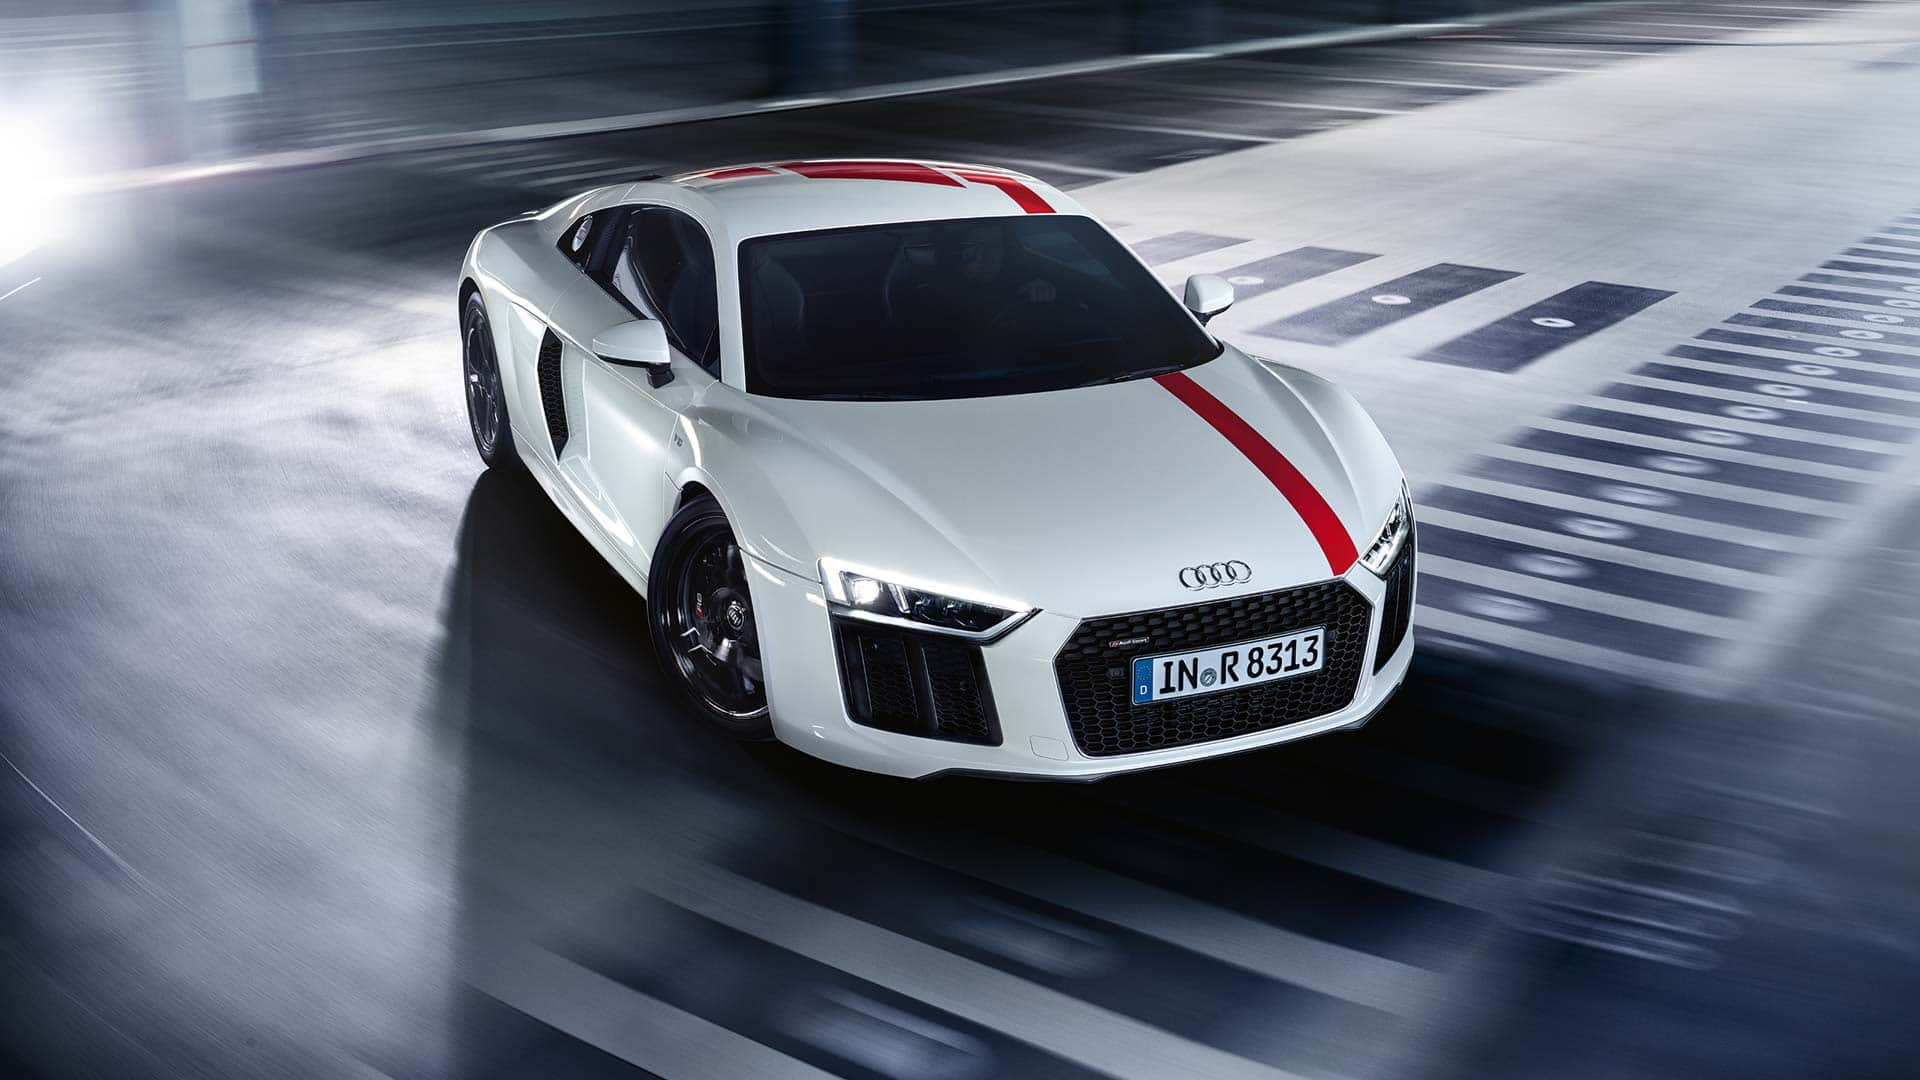 Elegant Whether On Straight Roads, In Curves Or At High Speed, The Audi R8 Coupé V10  RWS Offers Breathtaking Driving Pleasure And Successfully Brings The Drive  ...